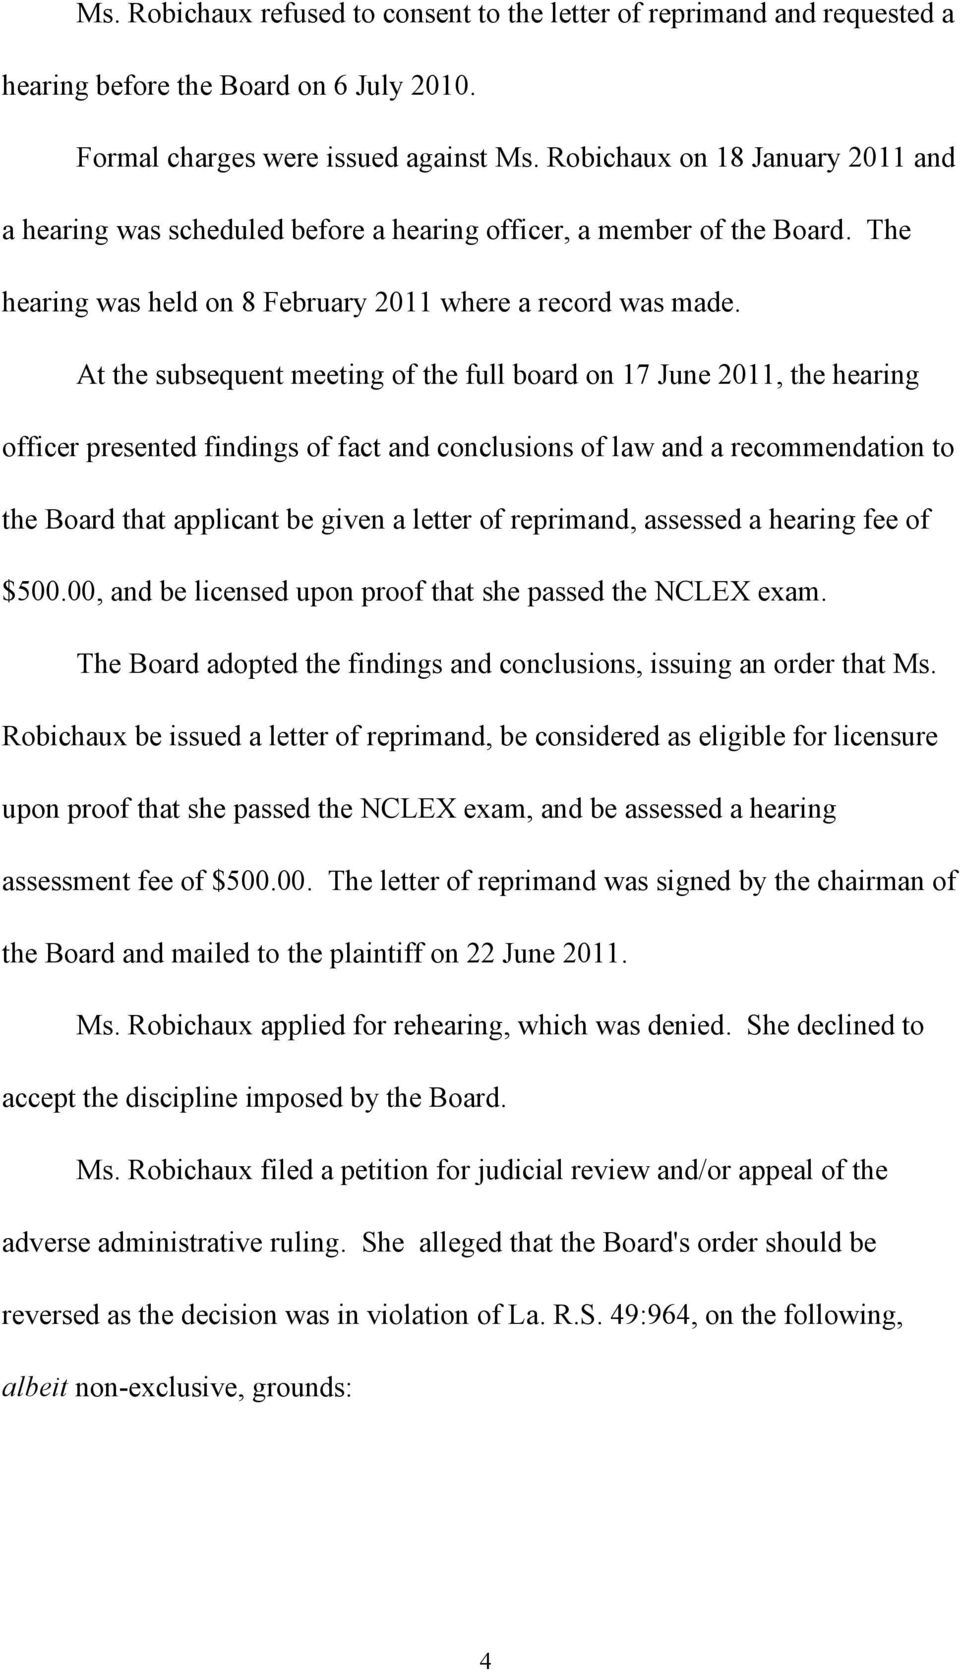 At the subsequent meeting of the full board on 17 June 2011, the hearing officer presented findings of fact and conclusions of law and a recommendation to the Board that applicant be given a letter